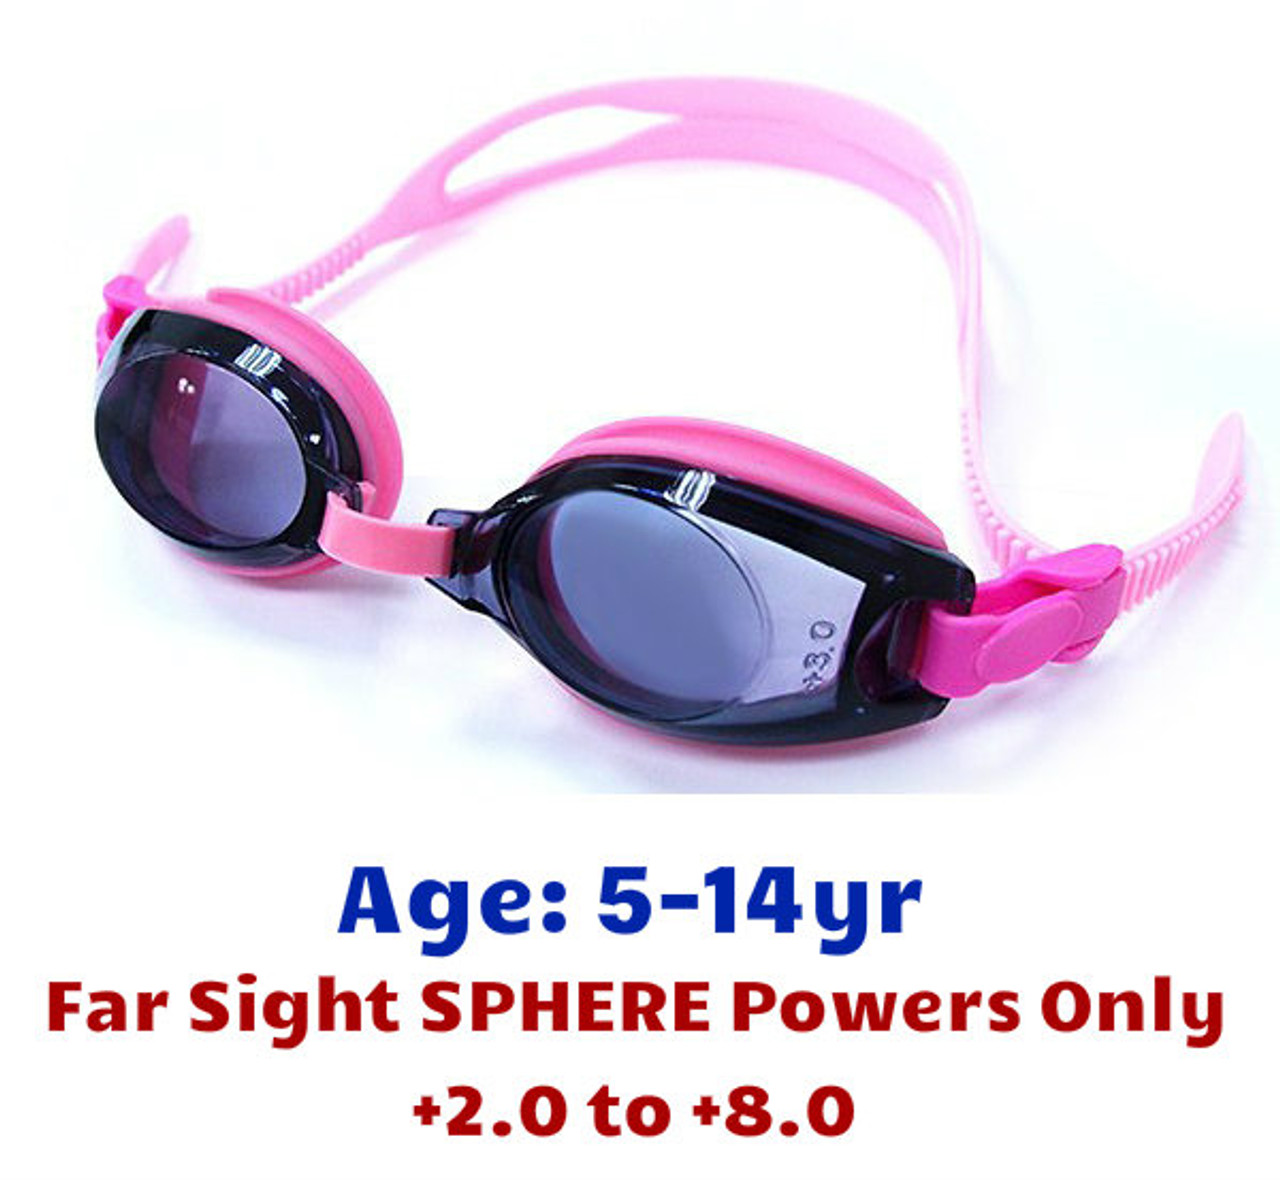 a8dcd40536 Pink Kids Prescription Swim Goggles with Farsight Power Lenses (Dark Grey  Tinted Lenses)